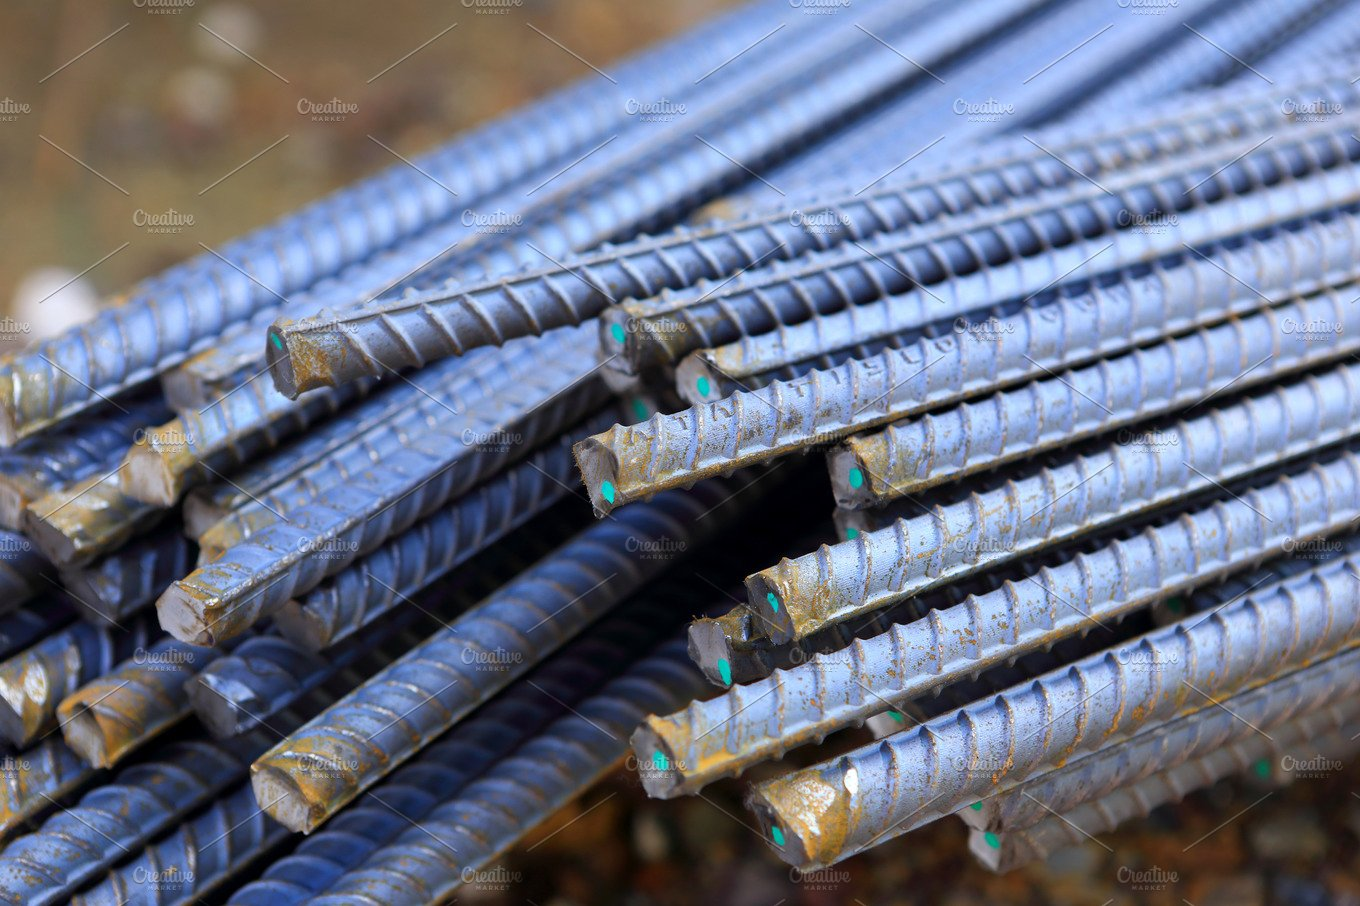 Steel Rod For Construction High Quality Industrial Stock Photos Creative Market